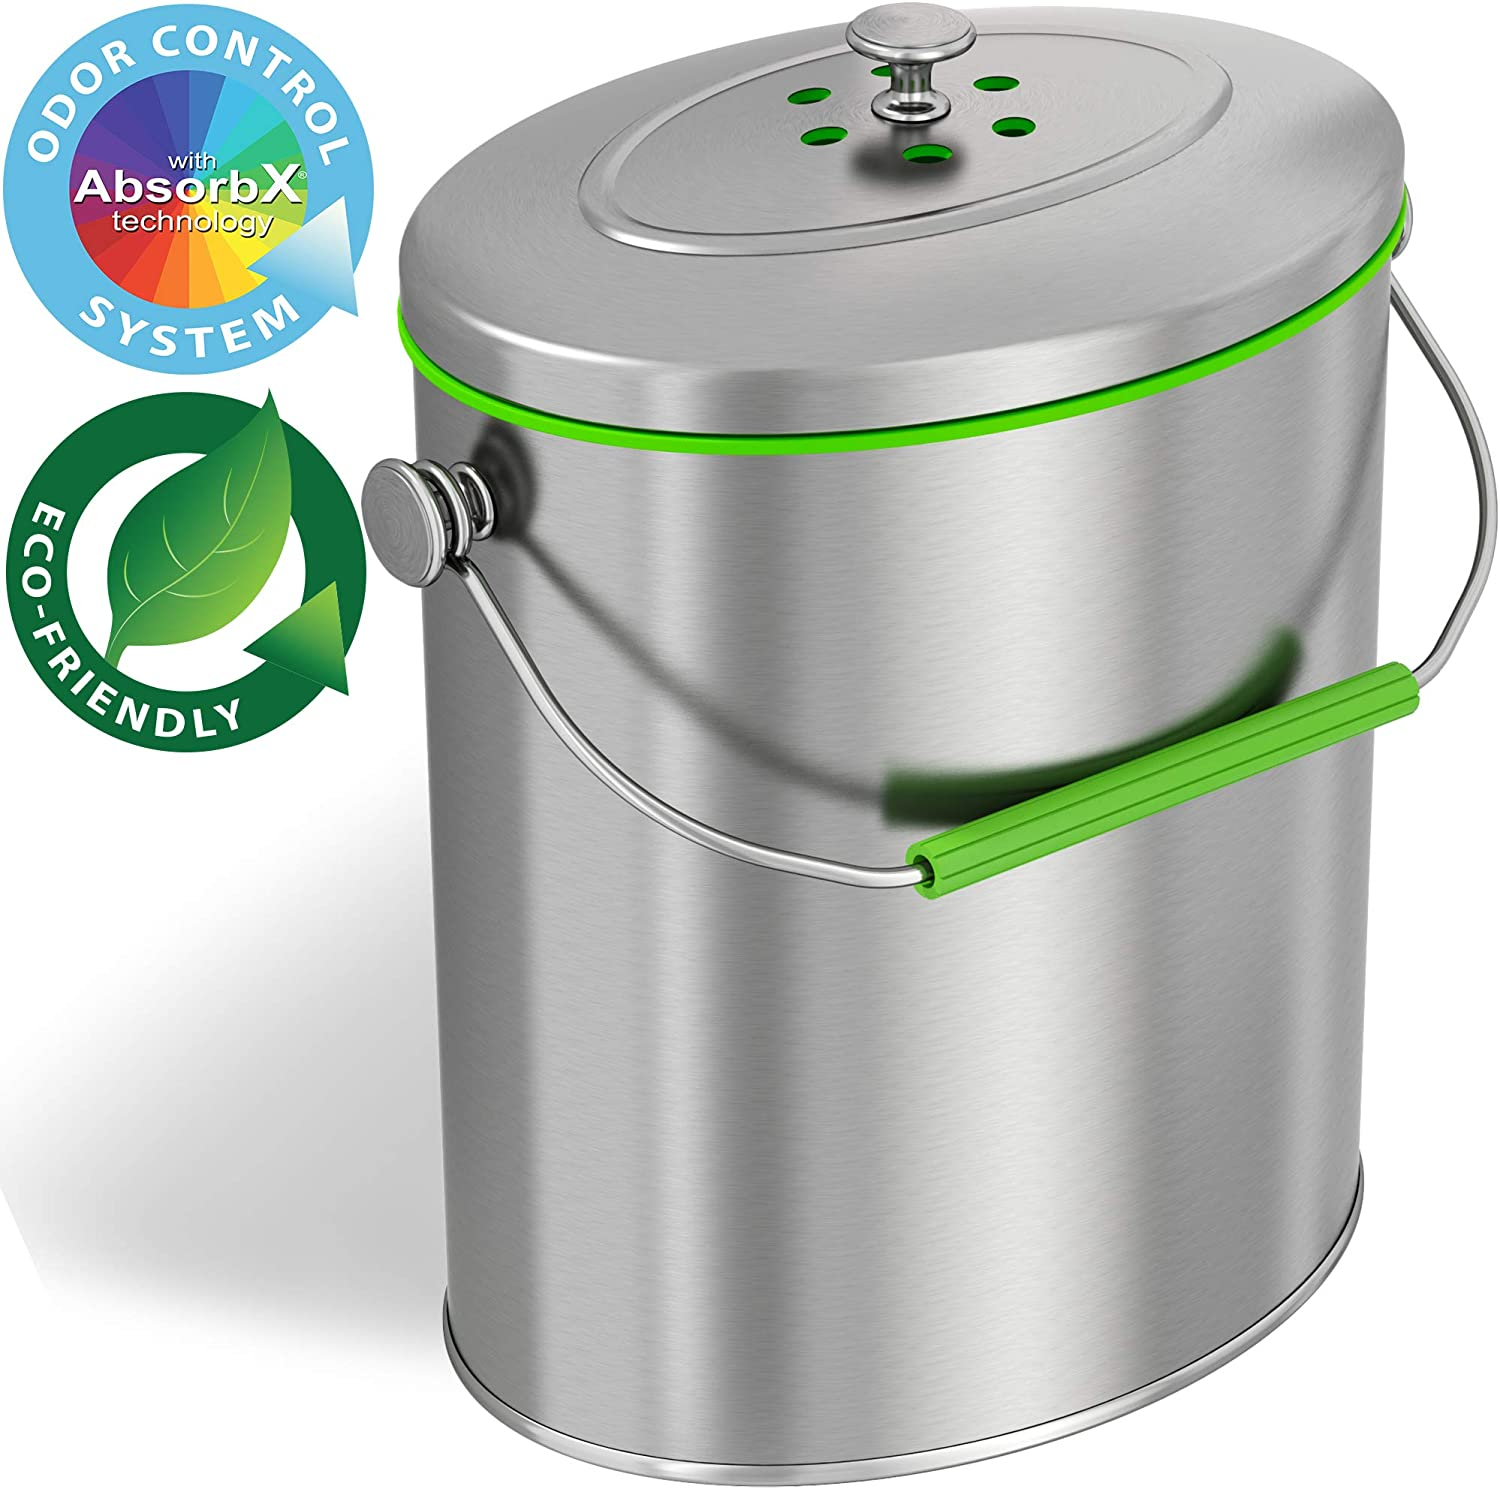 iTouchless Titanium 1.6 Gallon / 6 Liter Stainless Steel Compost Bin with AbsorbX Odor Filter System, Pest-Proof, Rust-Free Oval Shape Space Saving Kitchen Countertop Trash Can